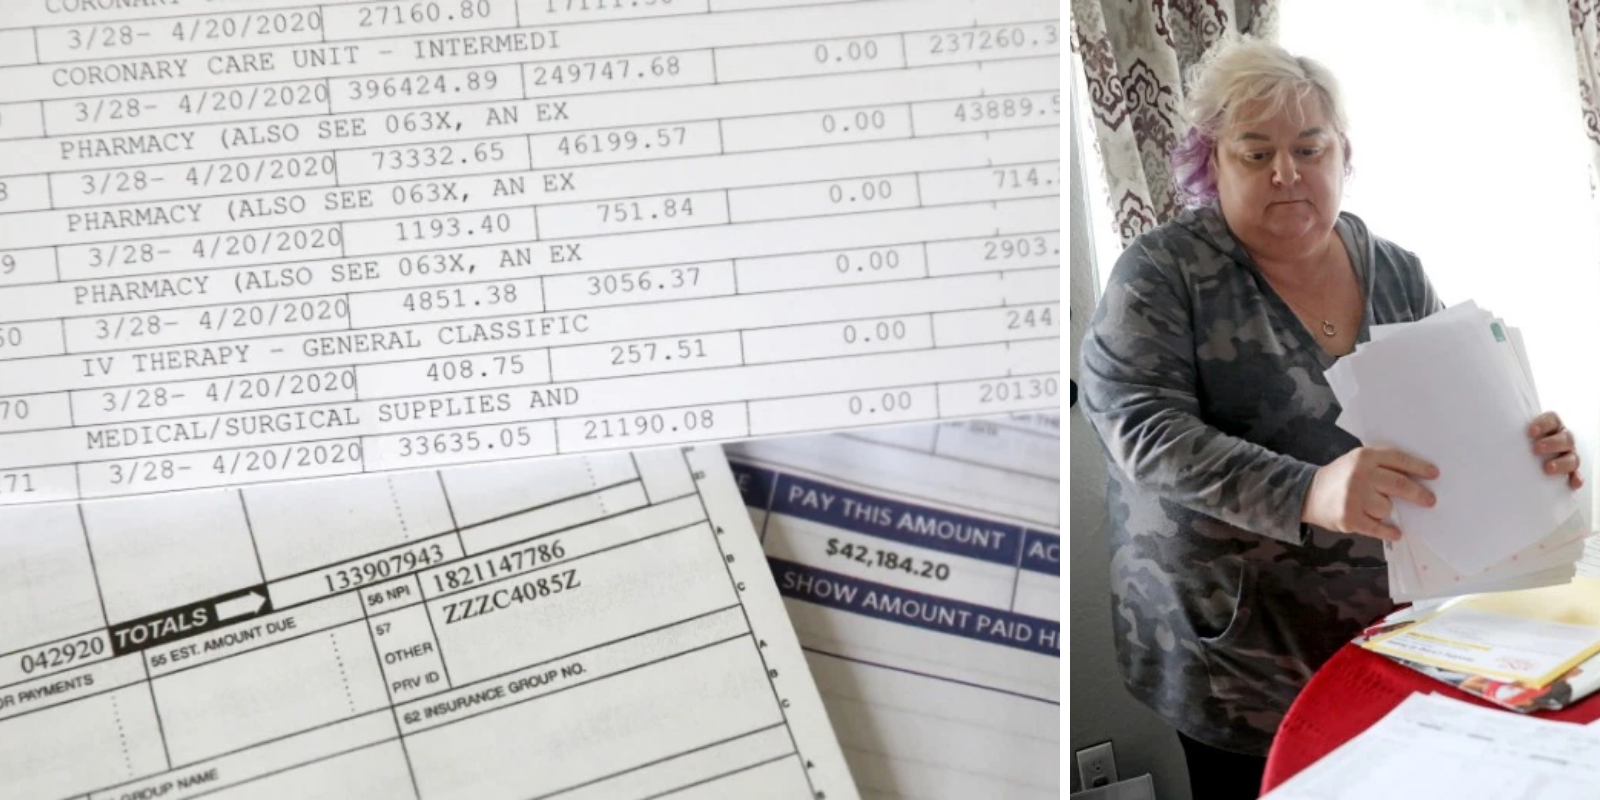 Woman faces over $1.3 million in medical bills after being hospitalized with coronavirus